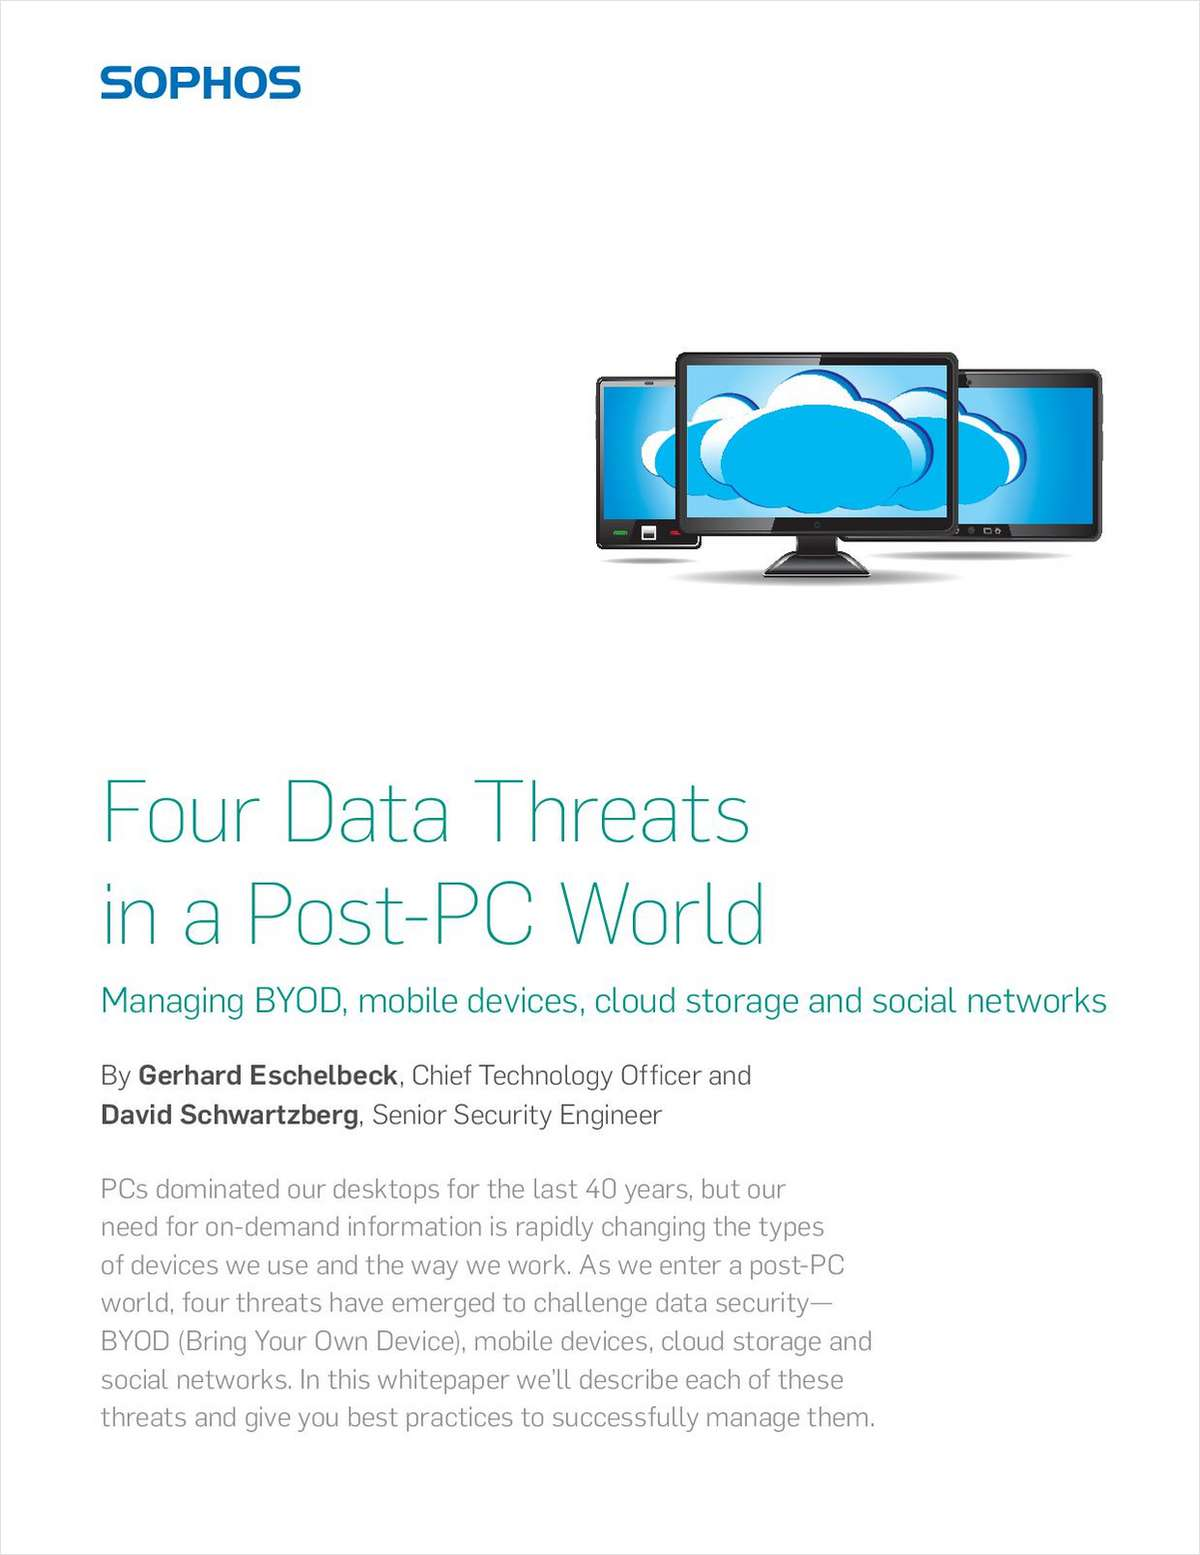 Four Data Threats in a Post-PC World